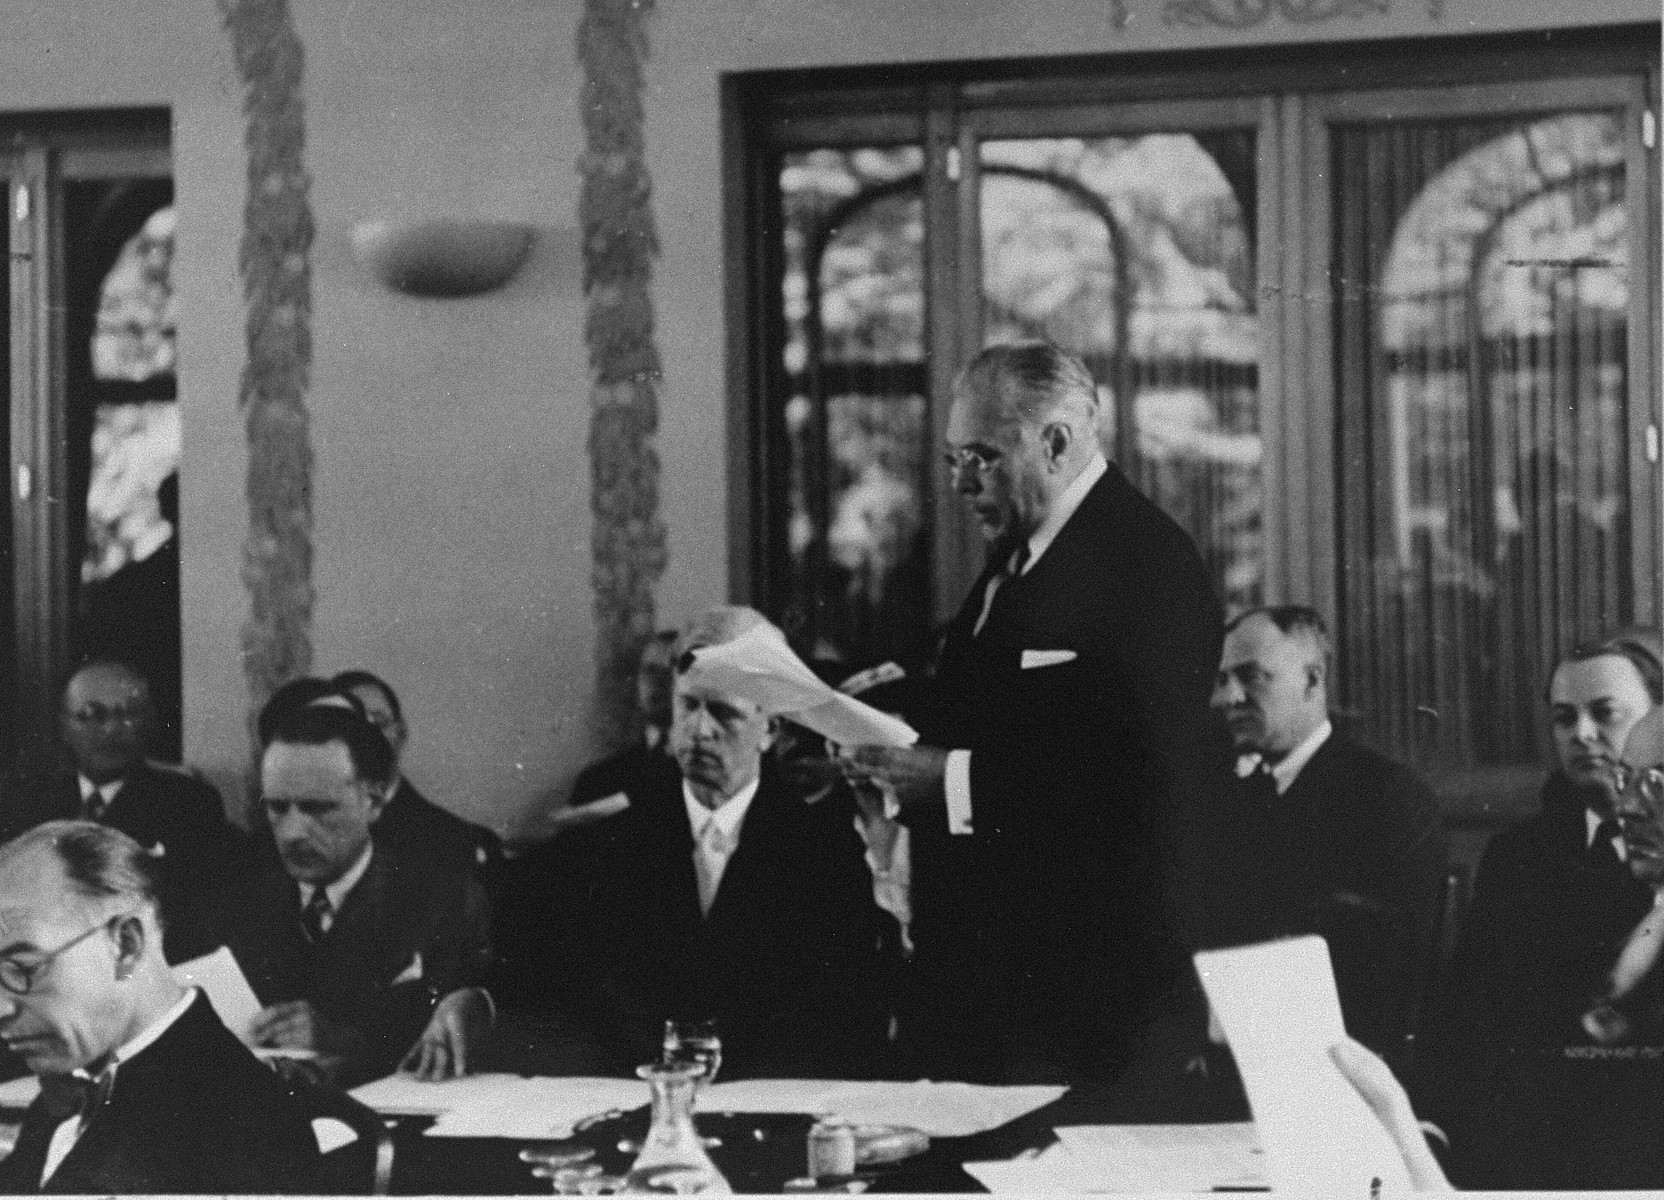 Myron Taylor addresses the International Conference on Refugees at Evian-les-Bains.  James Grover McDonald is seated next to him.  On the far right edge of the picture is Robert Thompson Pell, an assistant to Myron Taylor at State.  The man looking down, second from left of Taylor, with a dark tie and mustache is Georges Coulon.